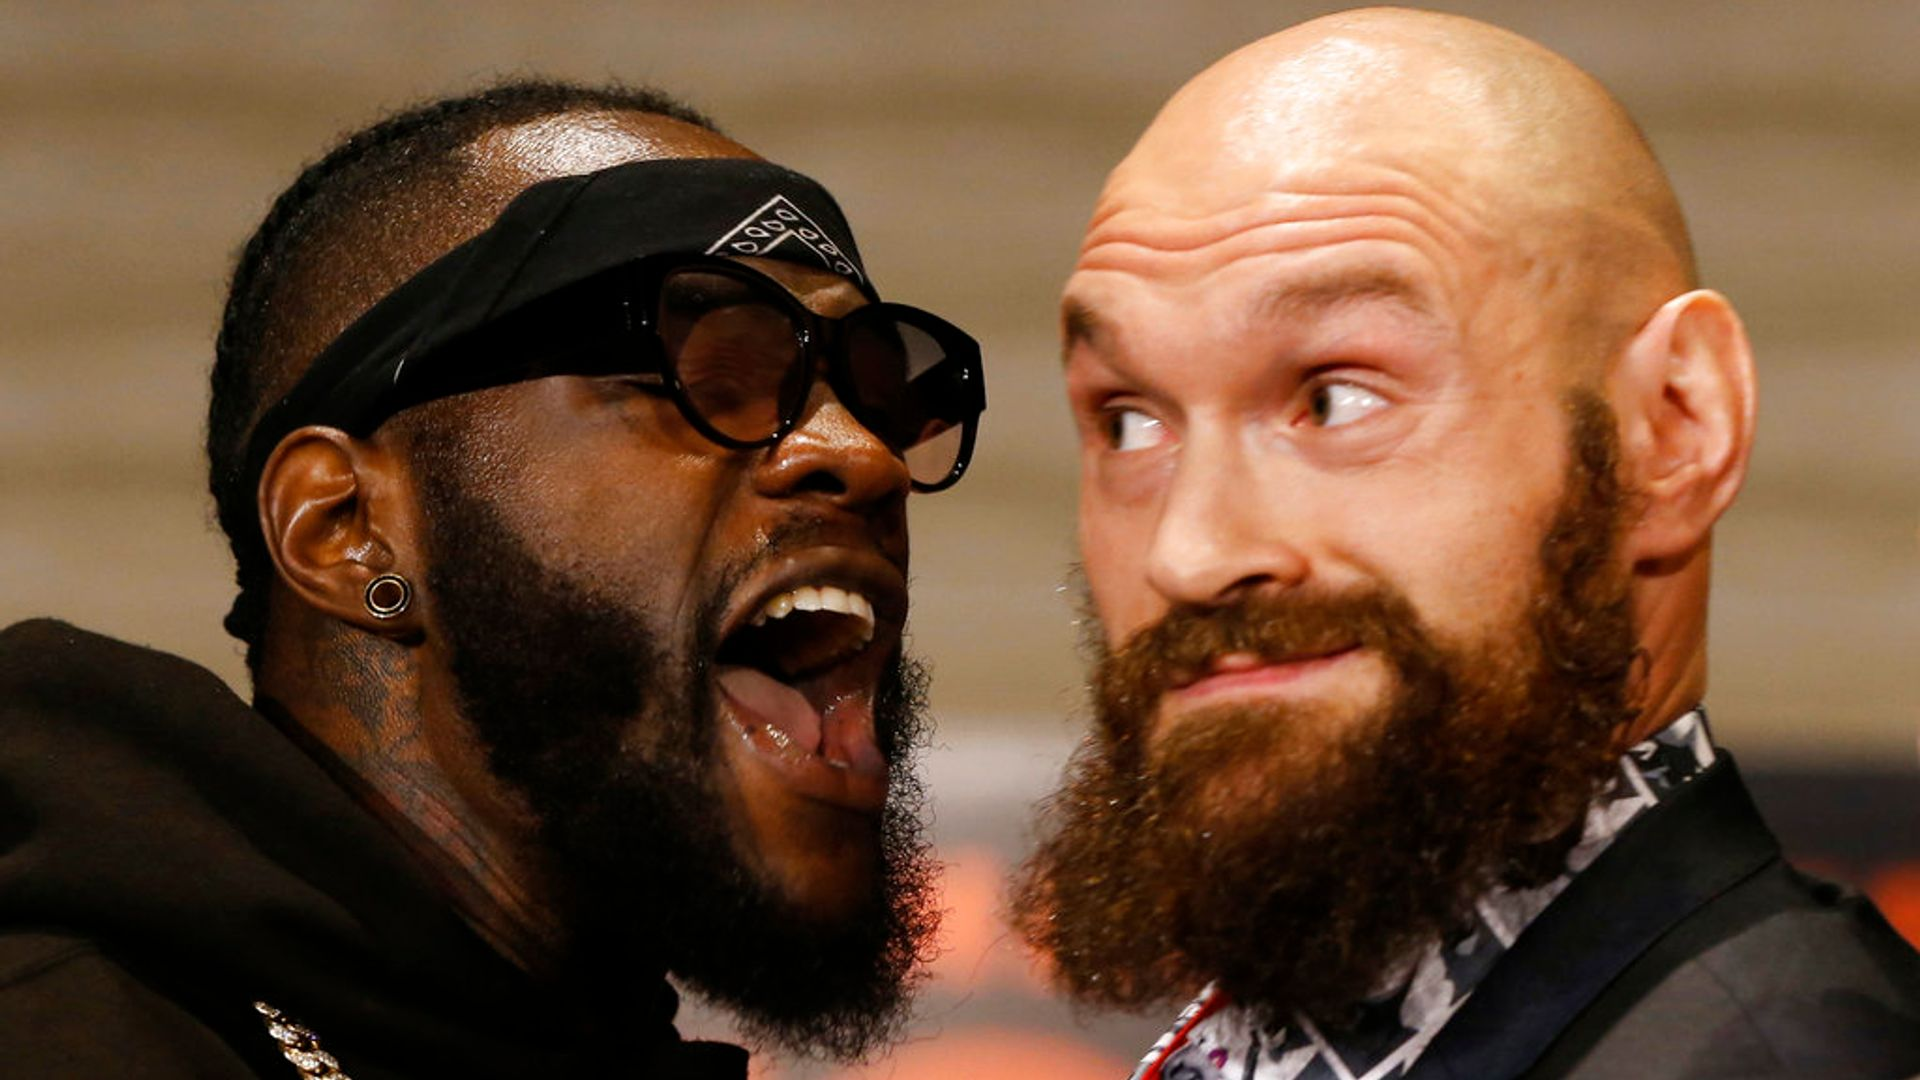 Tyson Fury and Deontay Wilder in tense face-off – Fury predicts: 'I guarantee he